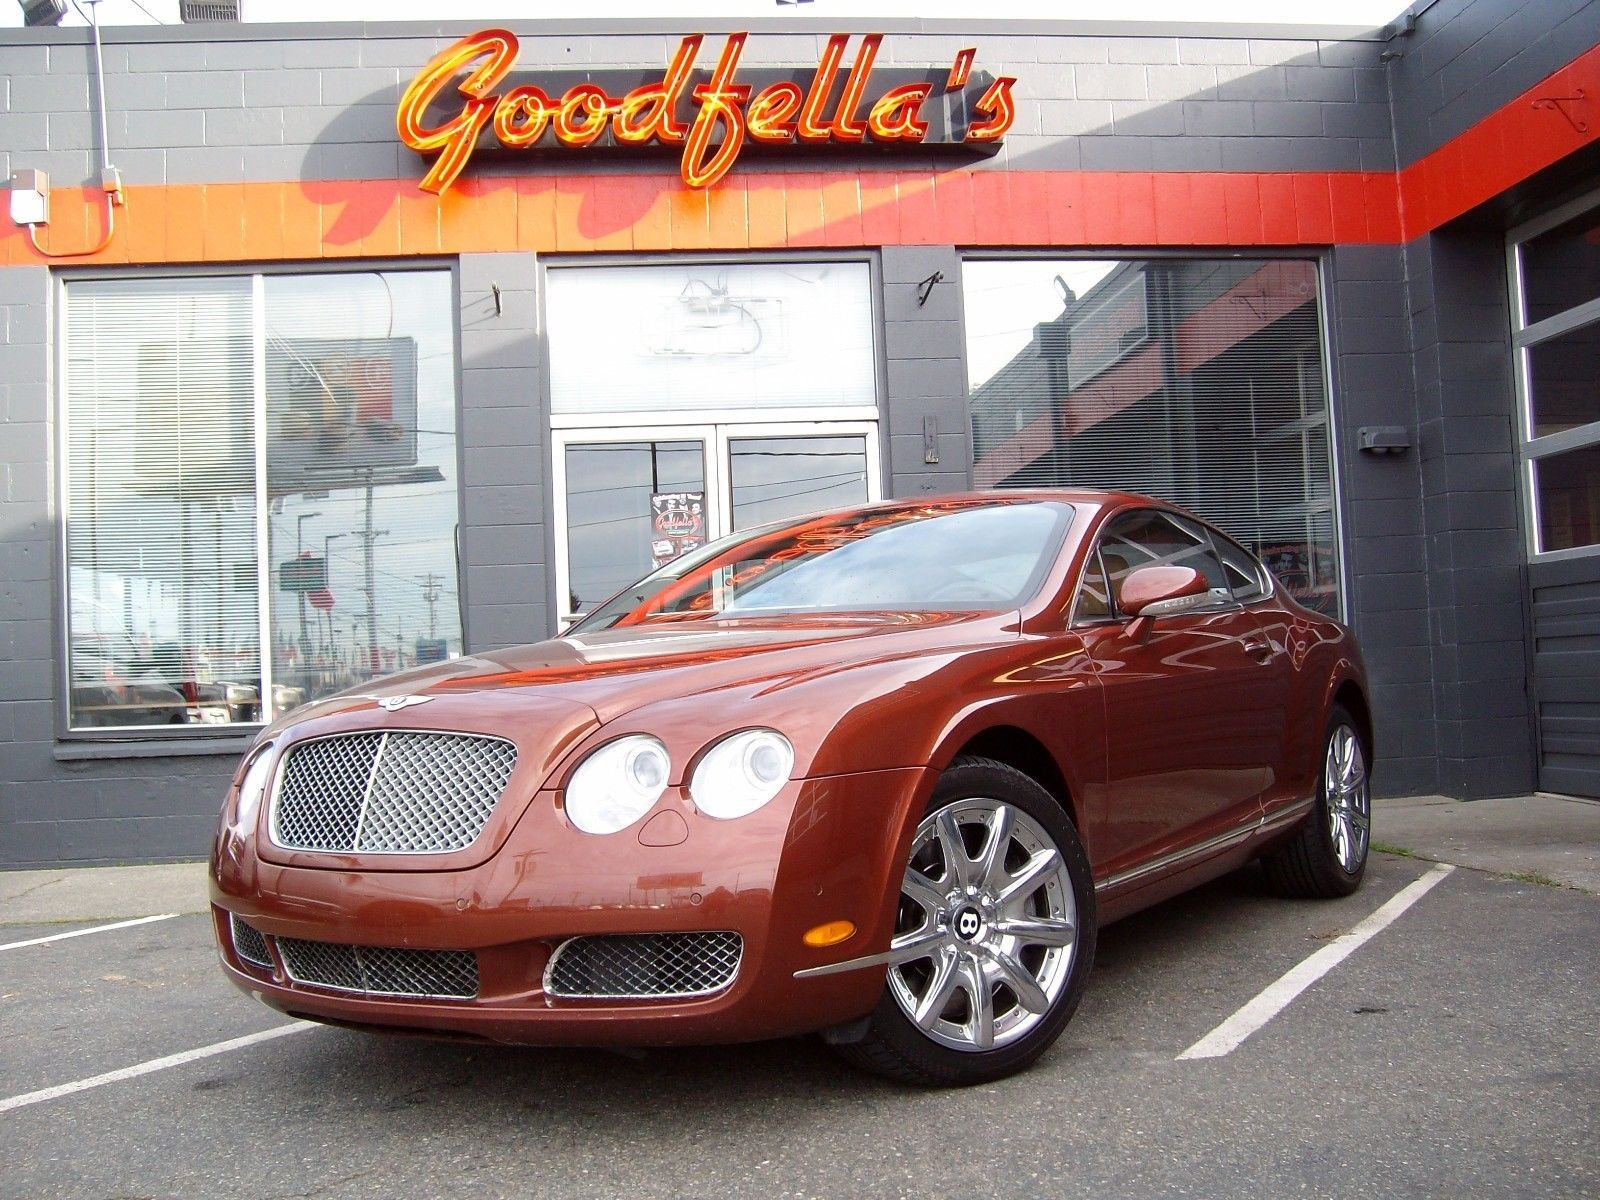 Carfax for Sale Awesome Cars for Sale Near Me Carfax New Luxury Cars for Sale Near Cars